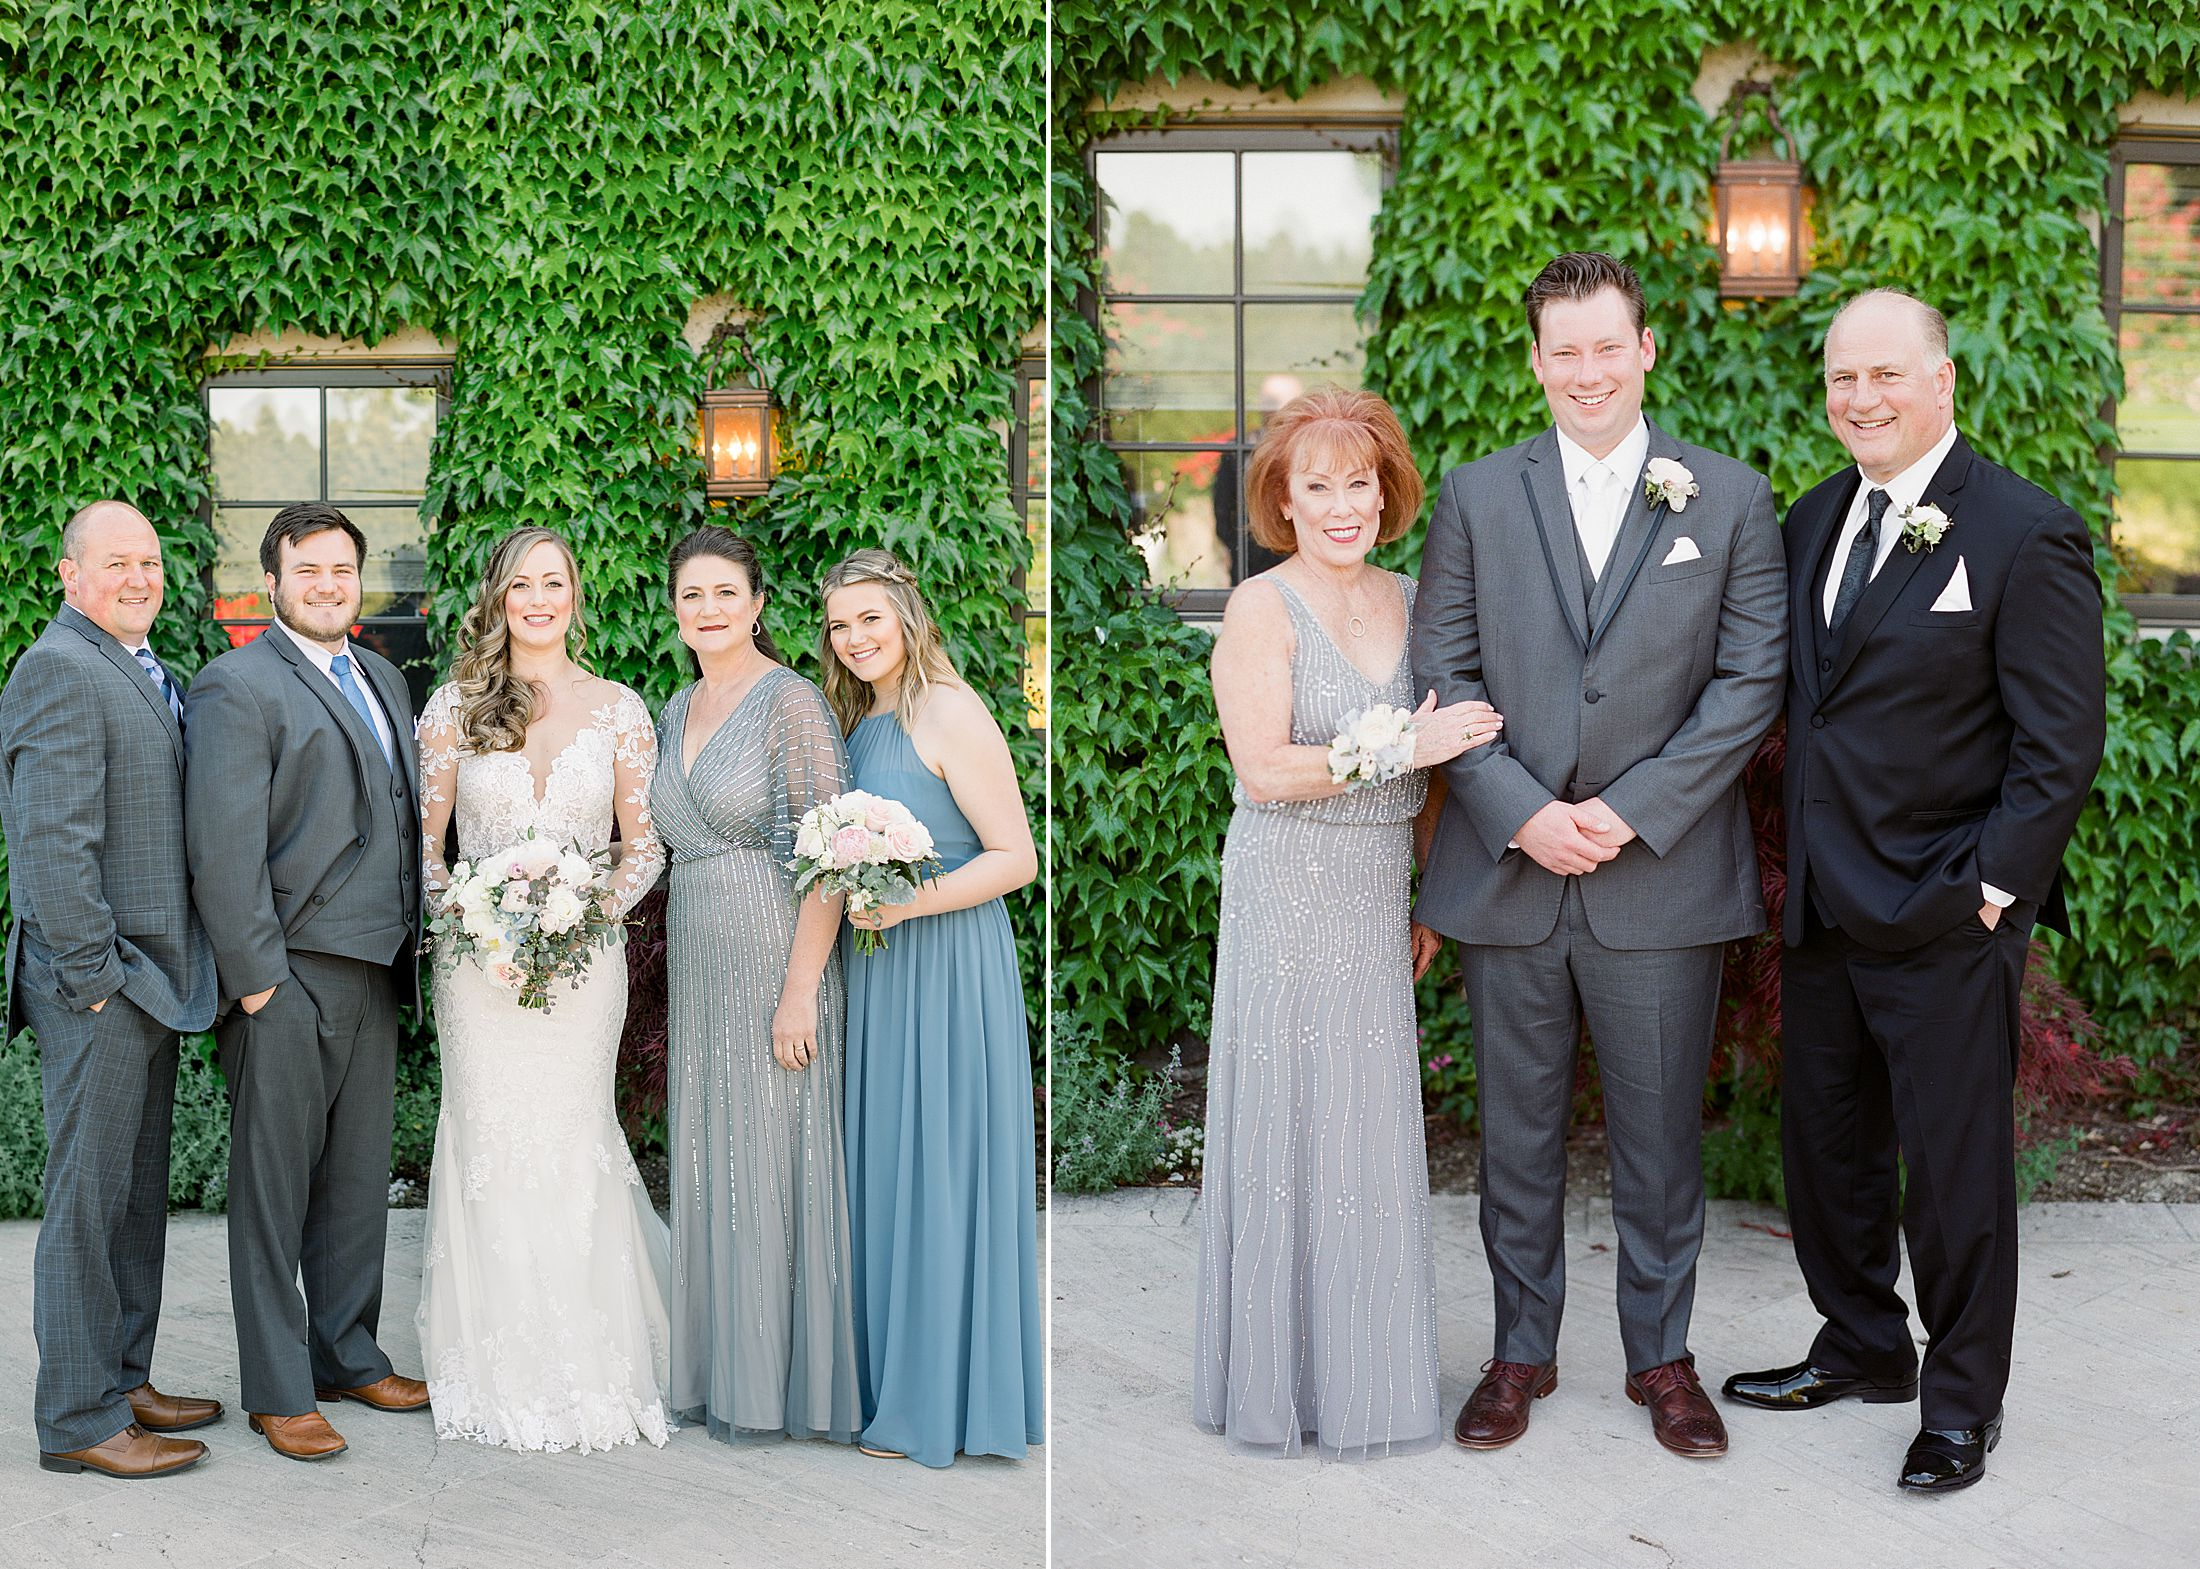 Clos LaChance Winery Wedding - Ashley Baumgartner - Kat & Kurt - Morgan Hill Wedding - Winery Wedding - Bay Area Photographer - Sacramento Wedding Photographer_0051.jpg